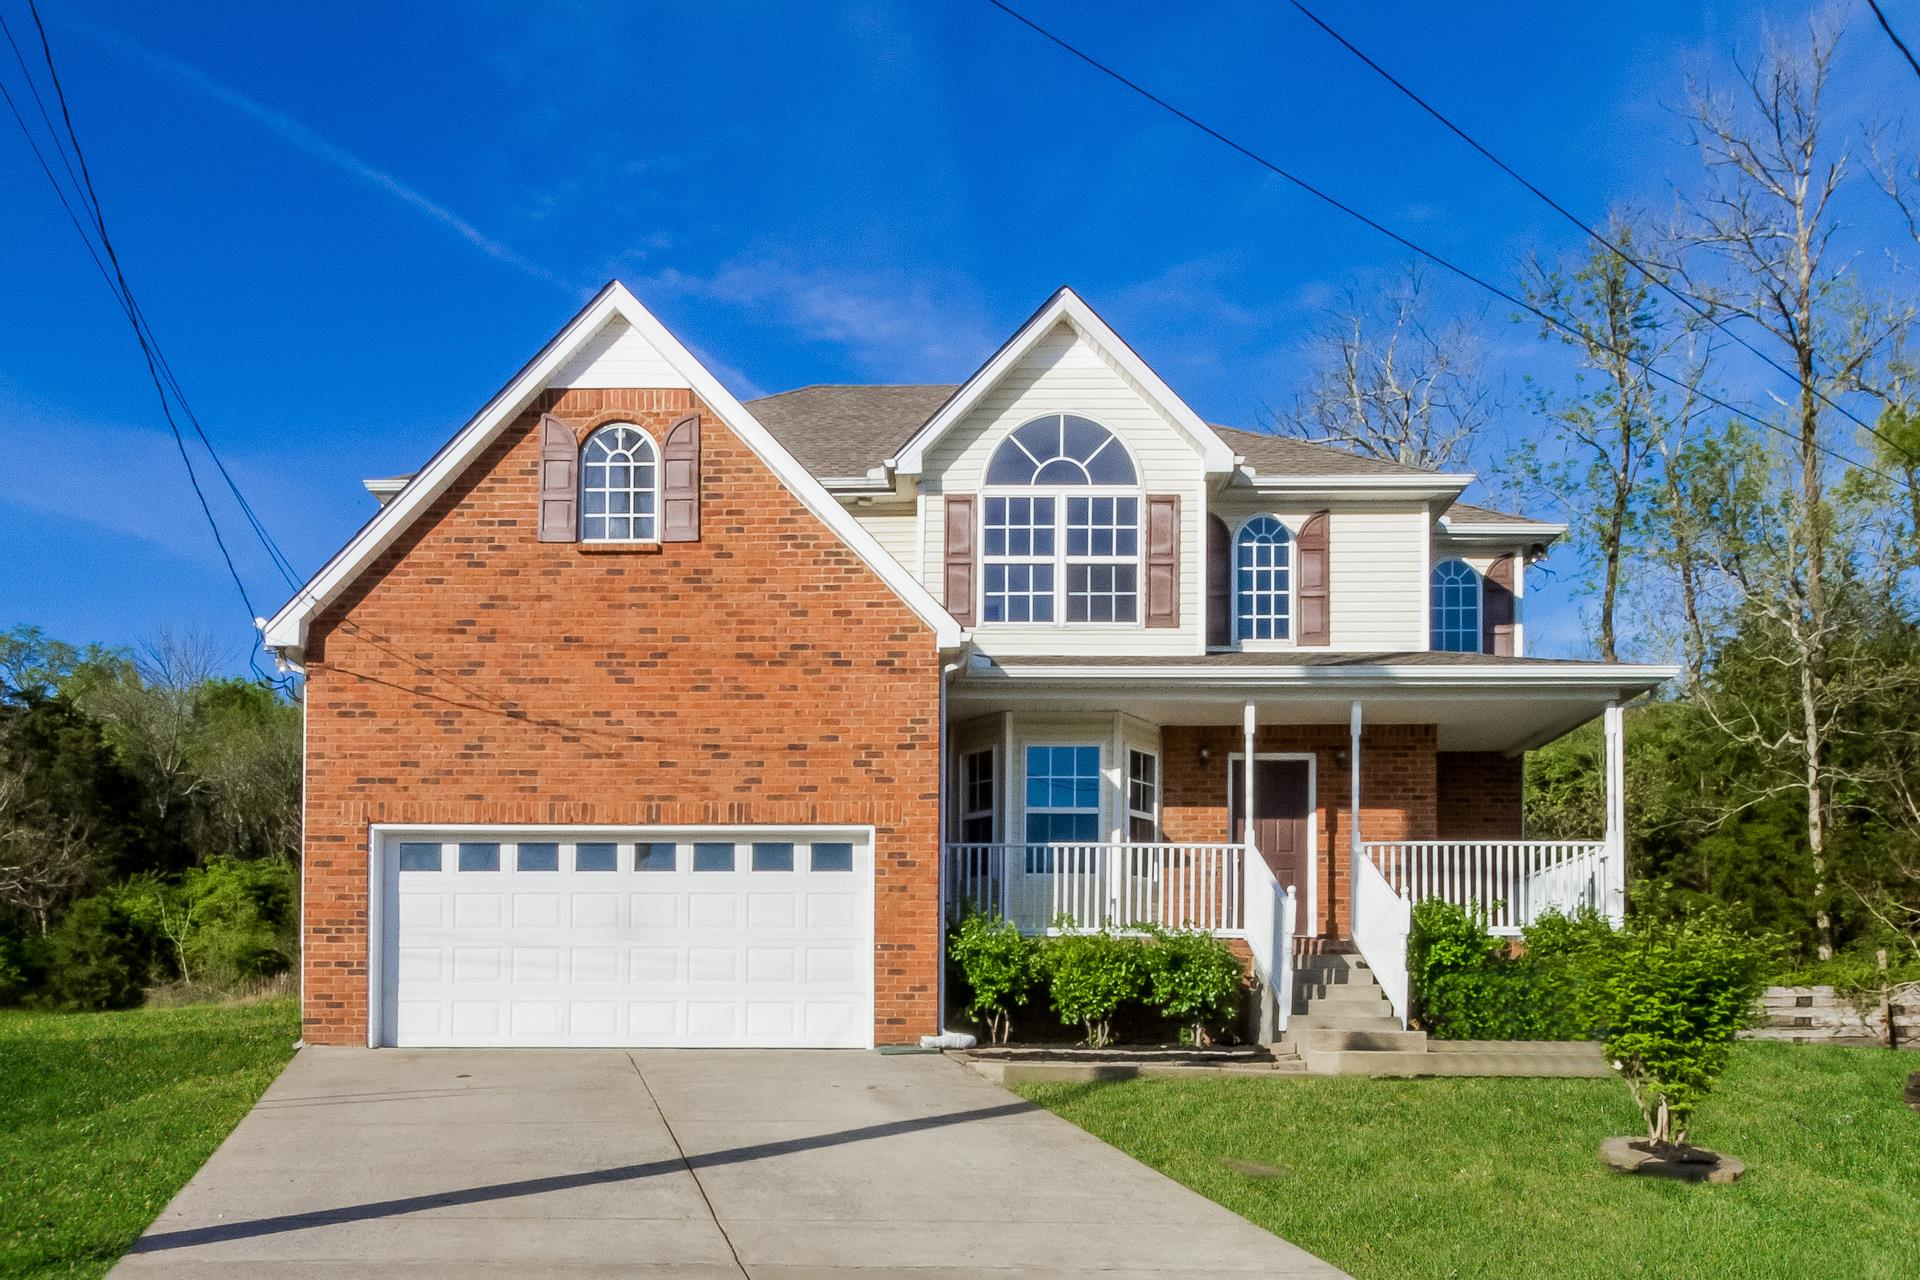 320 Camille Ct, Nashville-Antioch, Tennessee